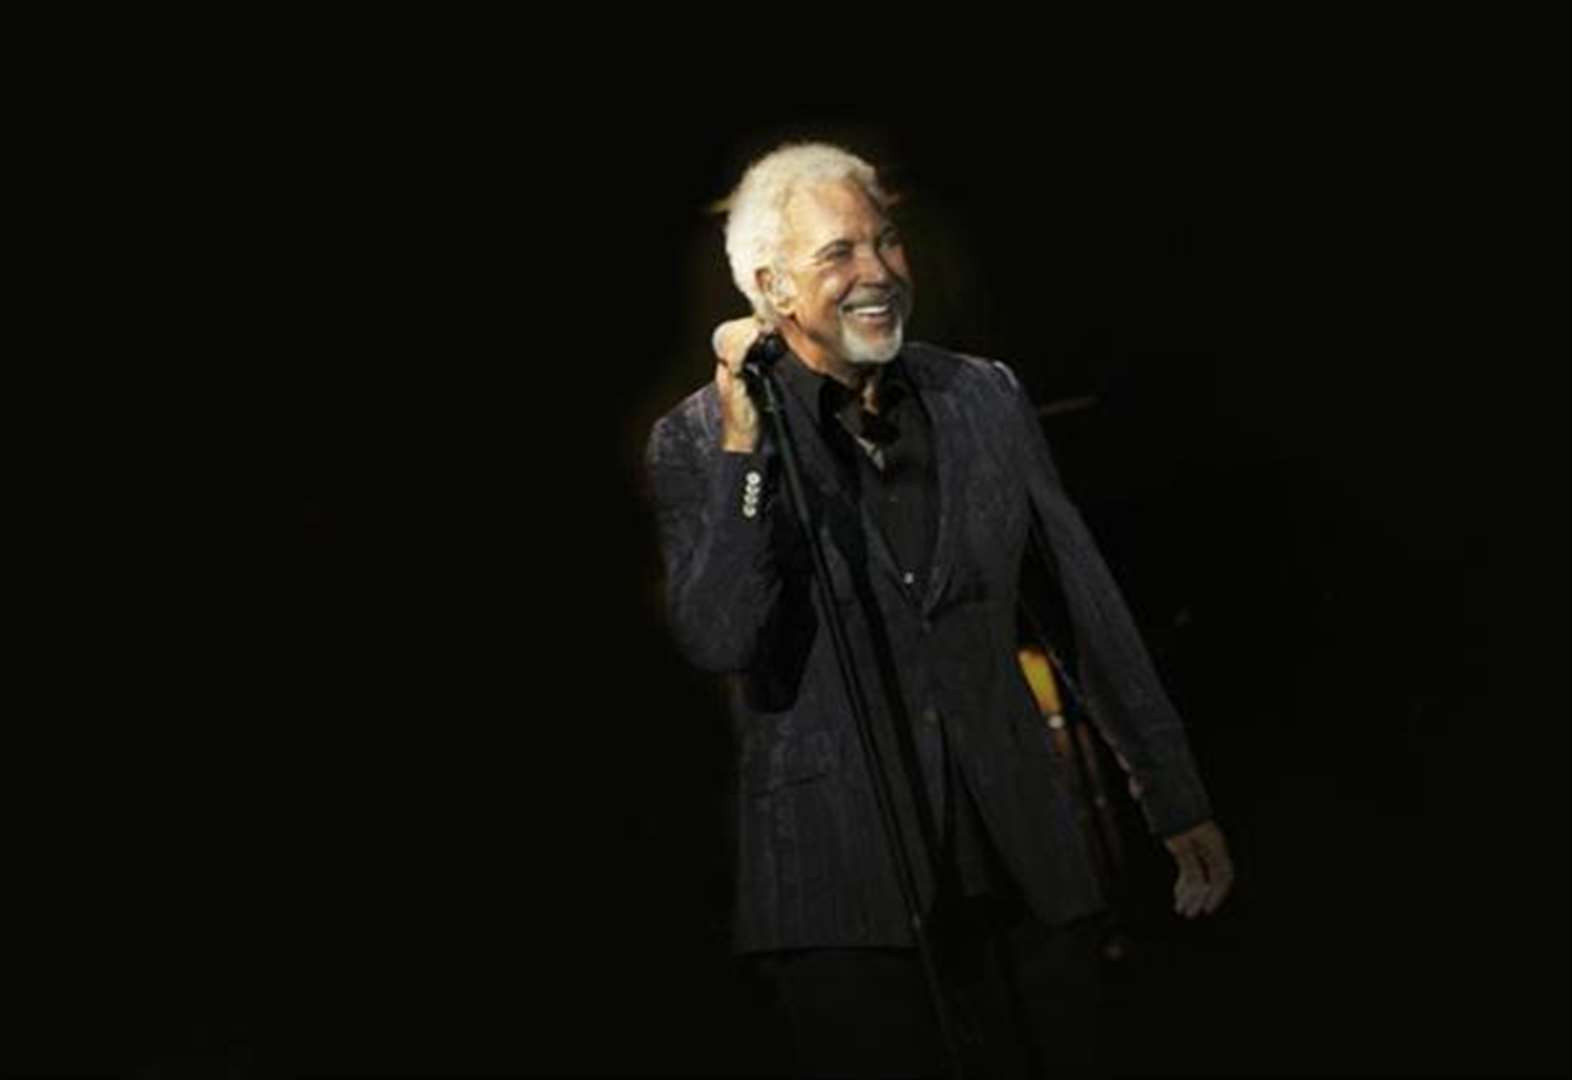 Singing legend Tom Jones cancels Belvoir Castle gig after falling ill